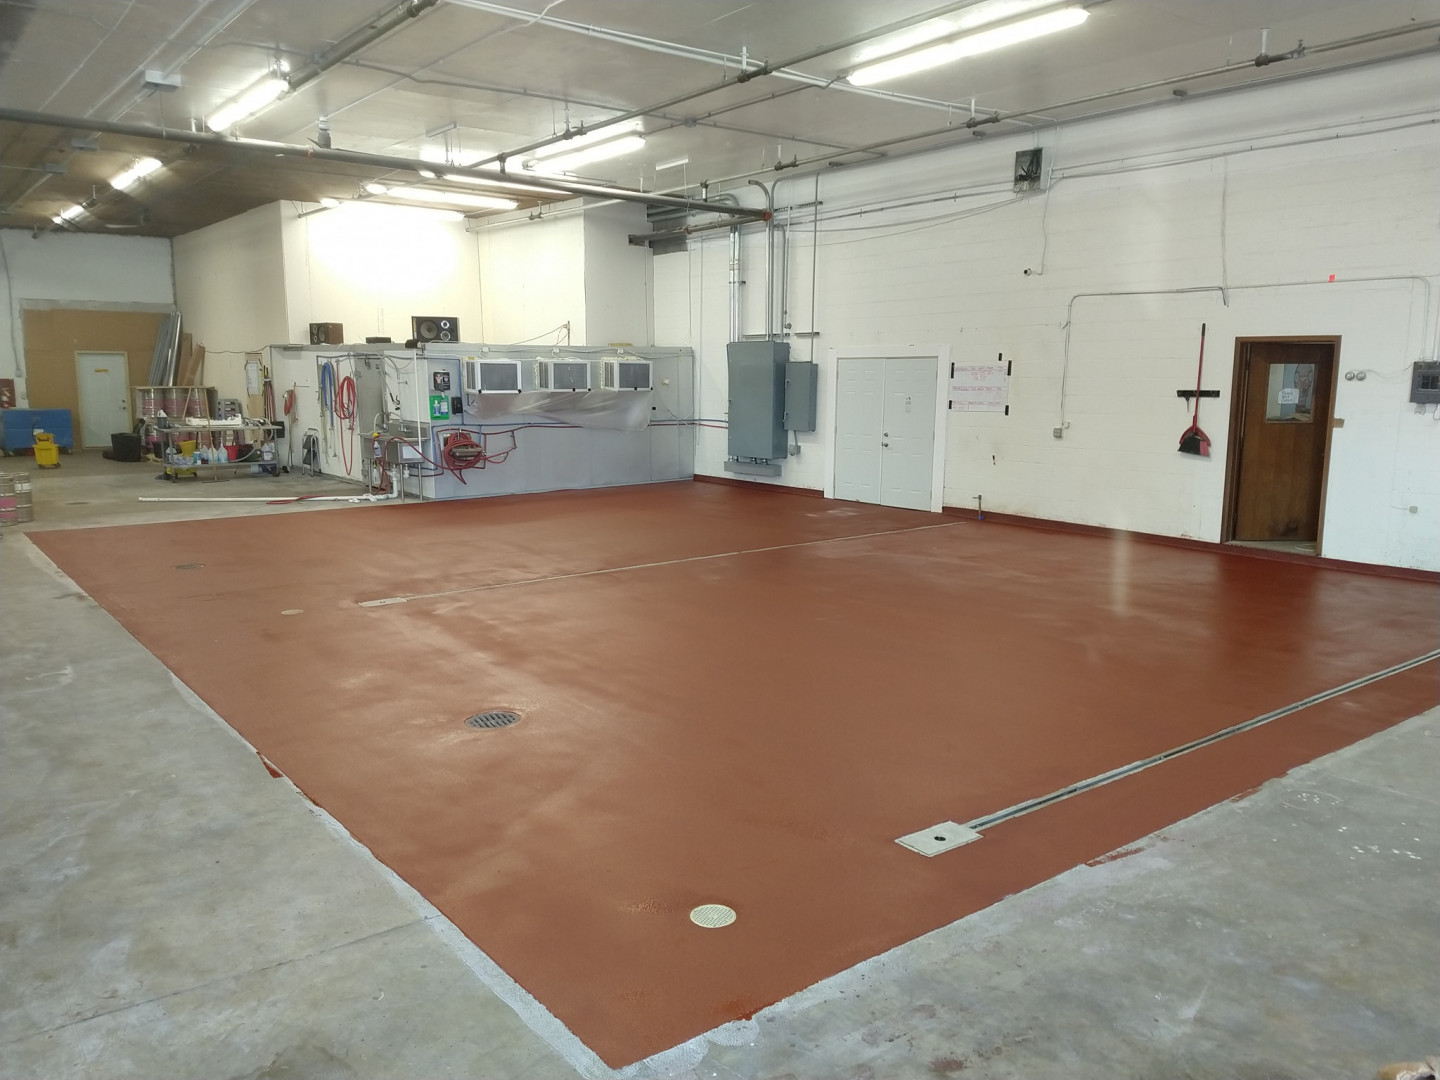 Upgrade Your Floor With a Urethane Cement Coating